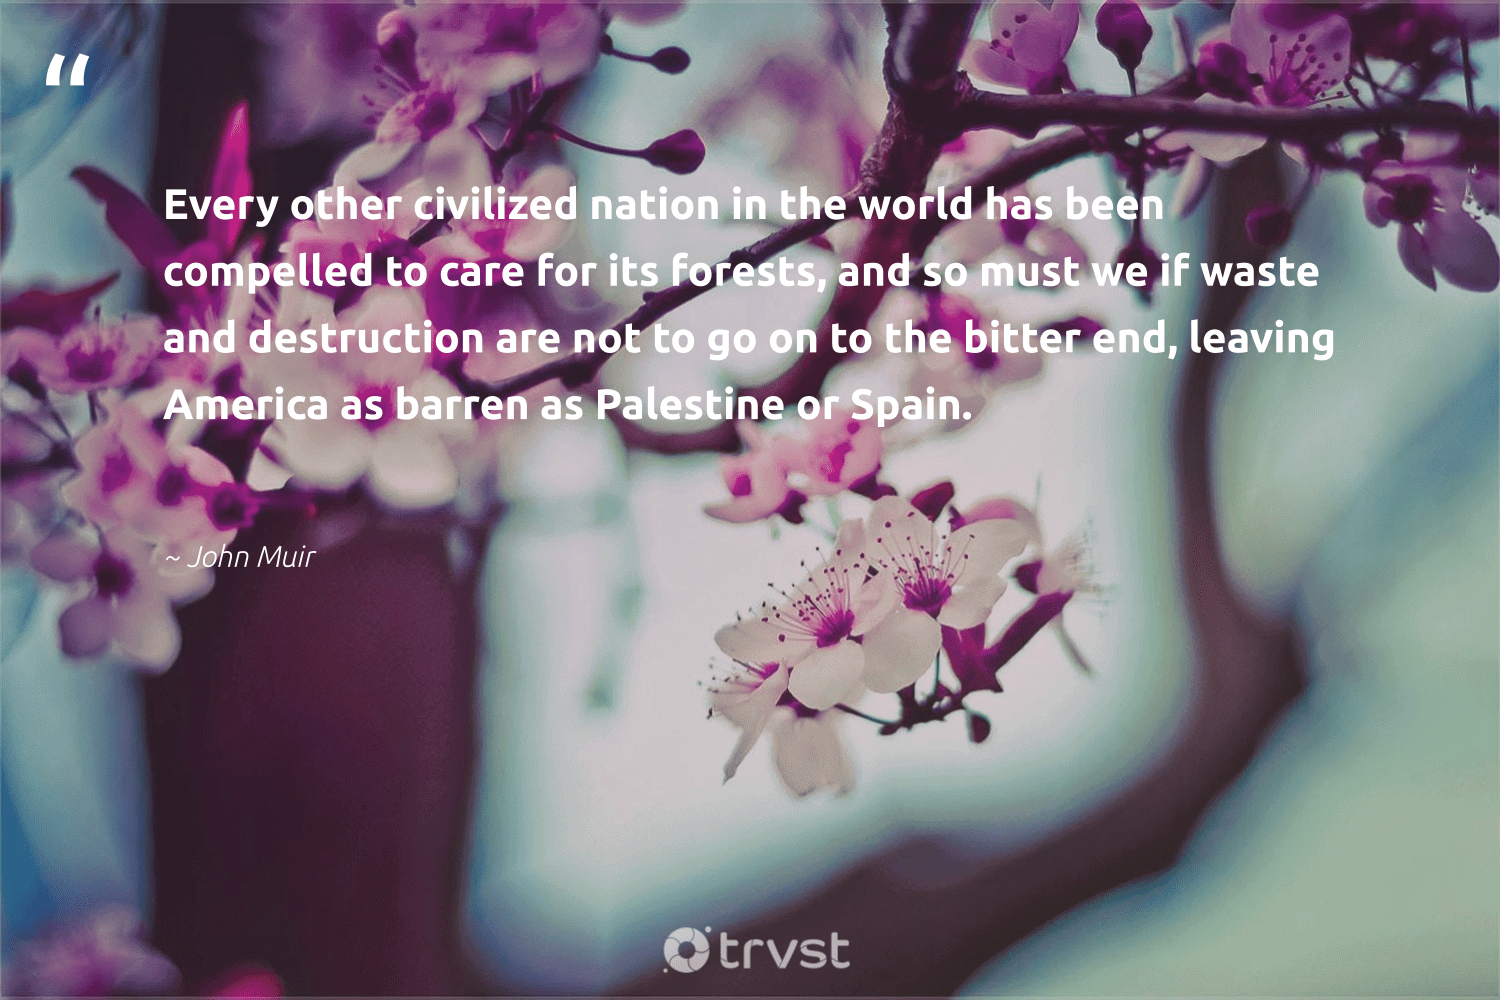 """""""Every other civilized nation in the world has been compelled to care for its forests, and so must we if waste and destruction are not to go on to the bitter end, leaving America as barren as Palestine or Spain.""""  - John Muir #trvst #quotes #waste #climatechange #impact #wildlifeplanet #collectiveaction #sustainable #dotherightthing #sustainableliving #changetheworld #noplanetb"""